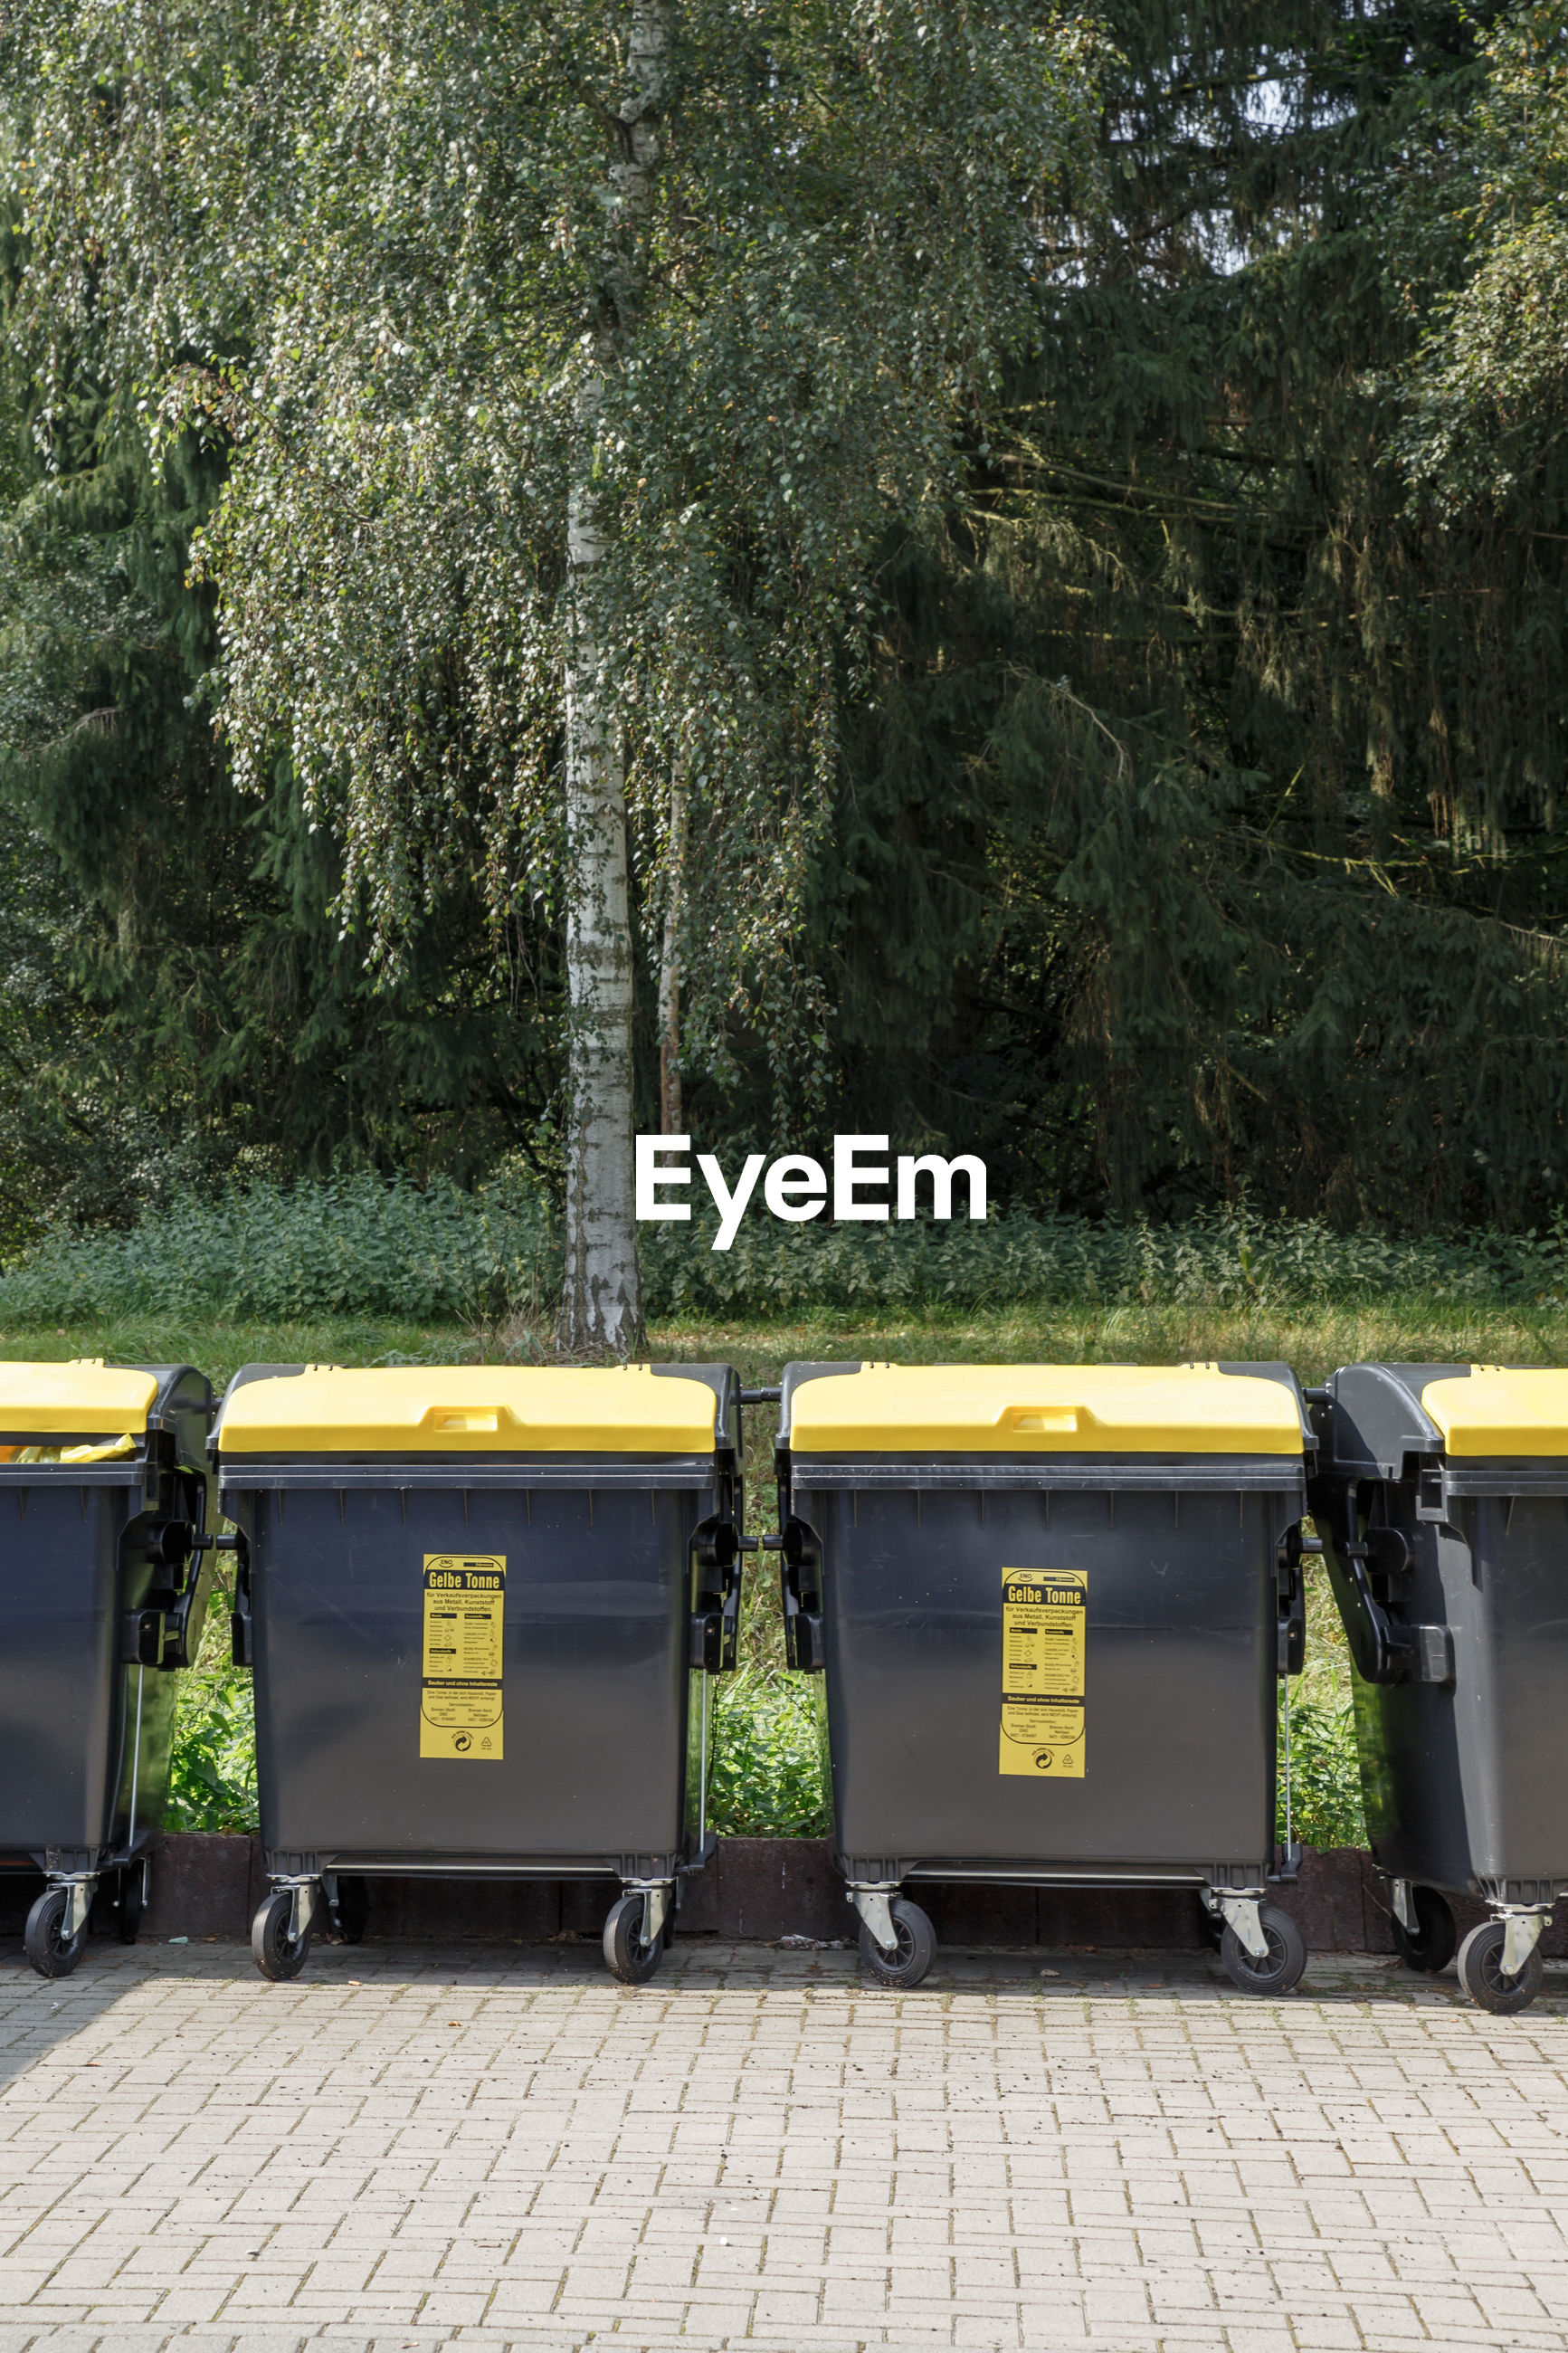 Wheeled garbage cans against trees